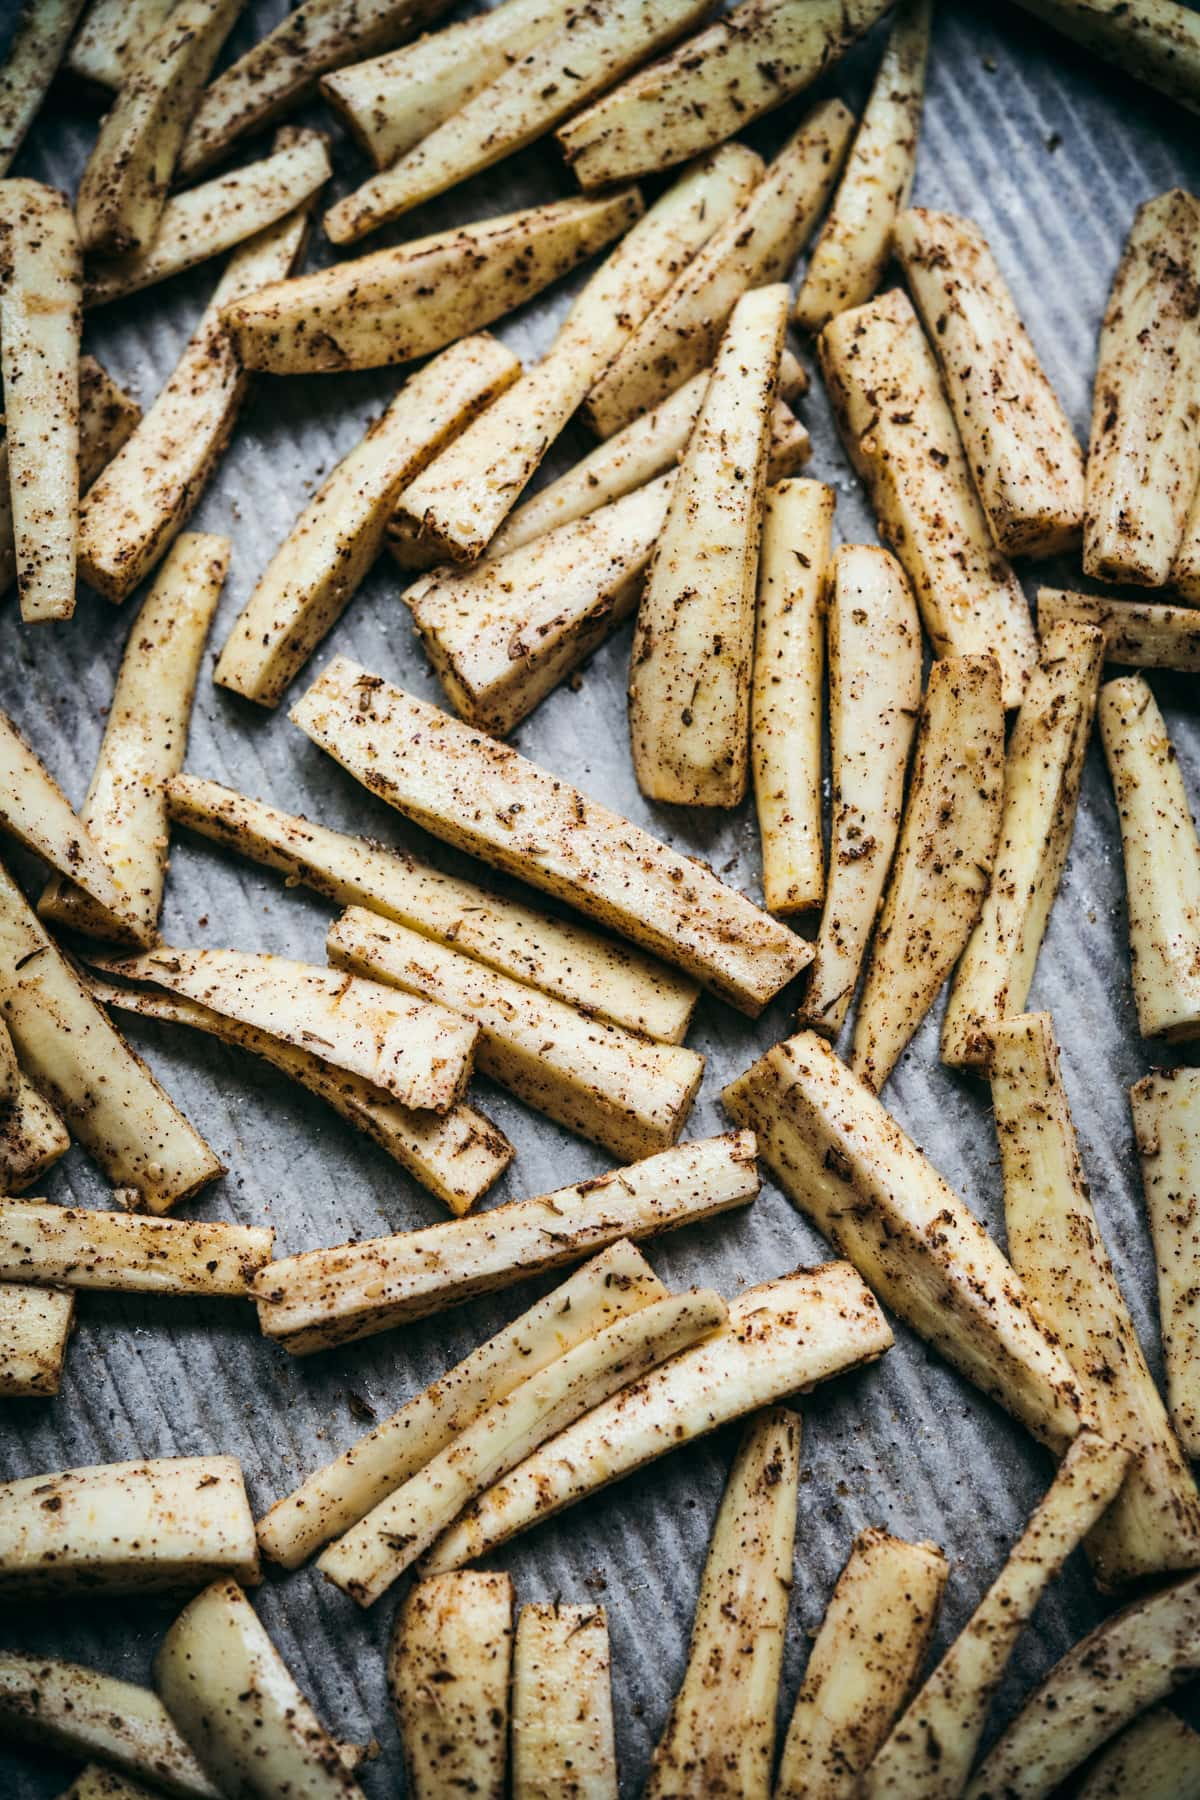 za'atar spiced parsnips on sheet pan before roasting.